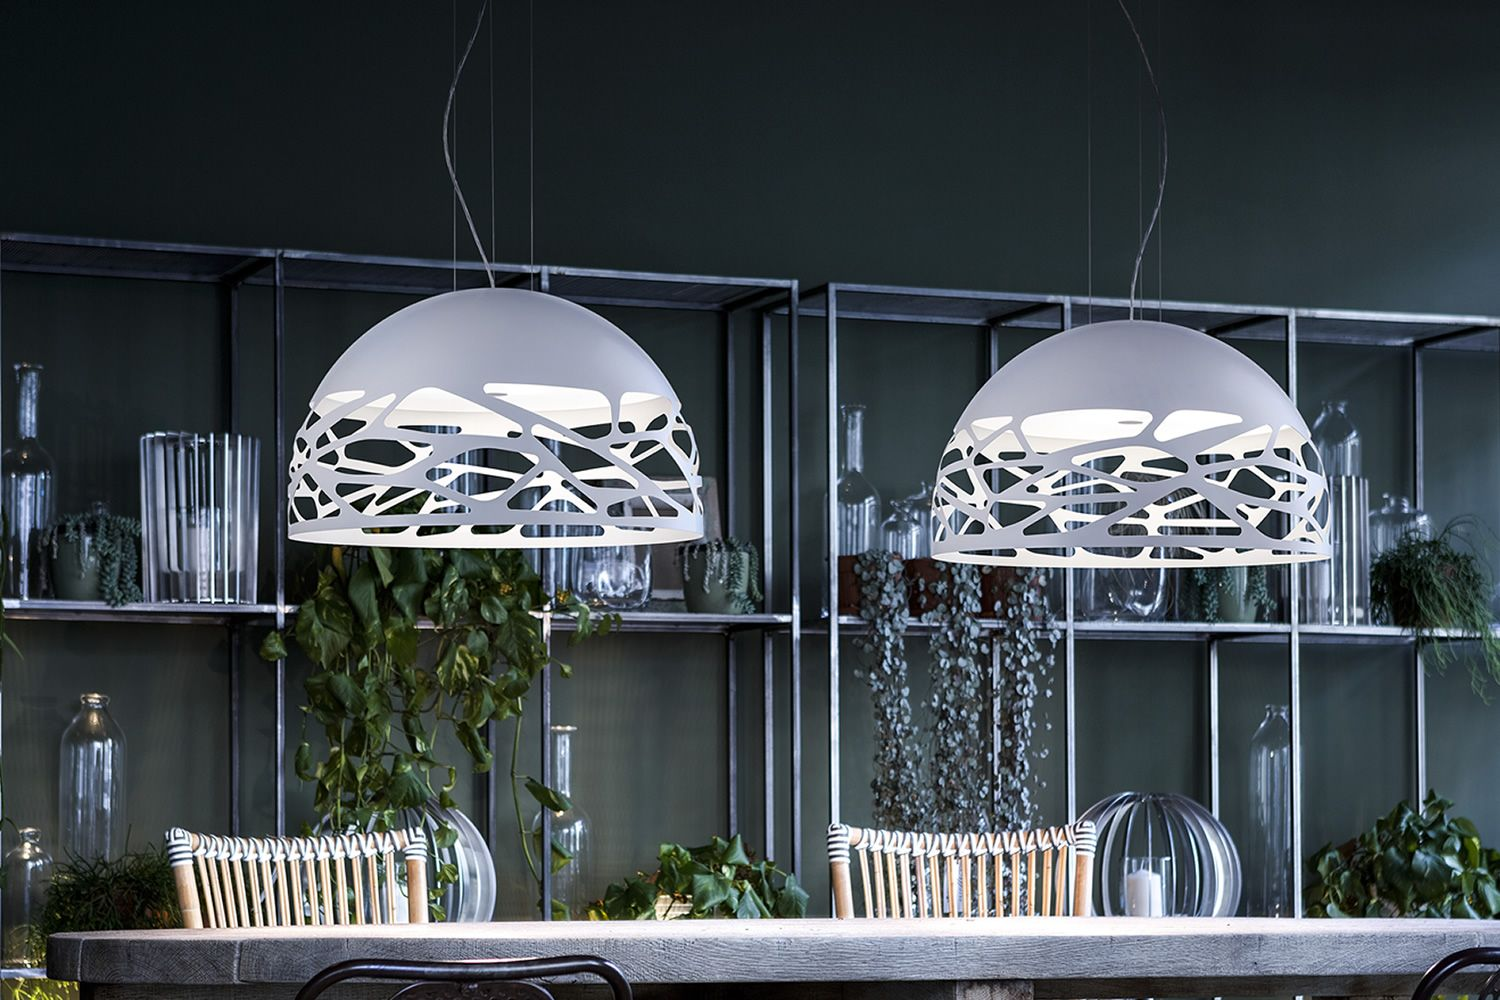 Kelly dome designer suspension lamp in metal available in